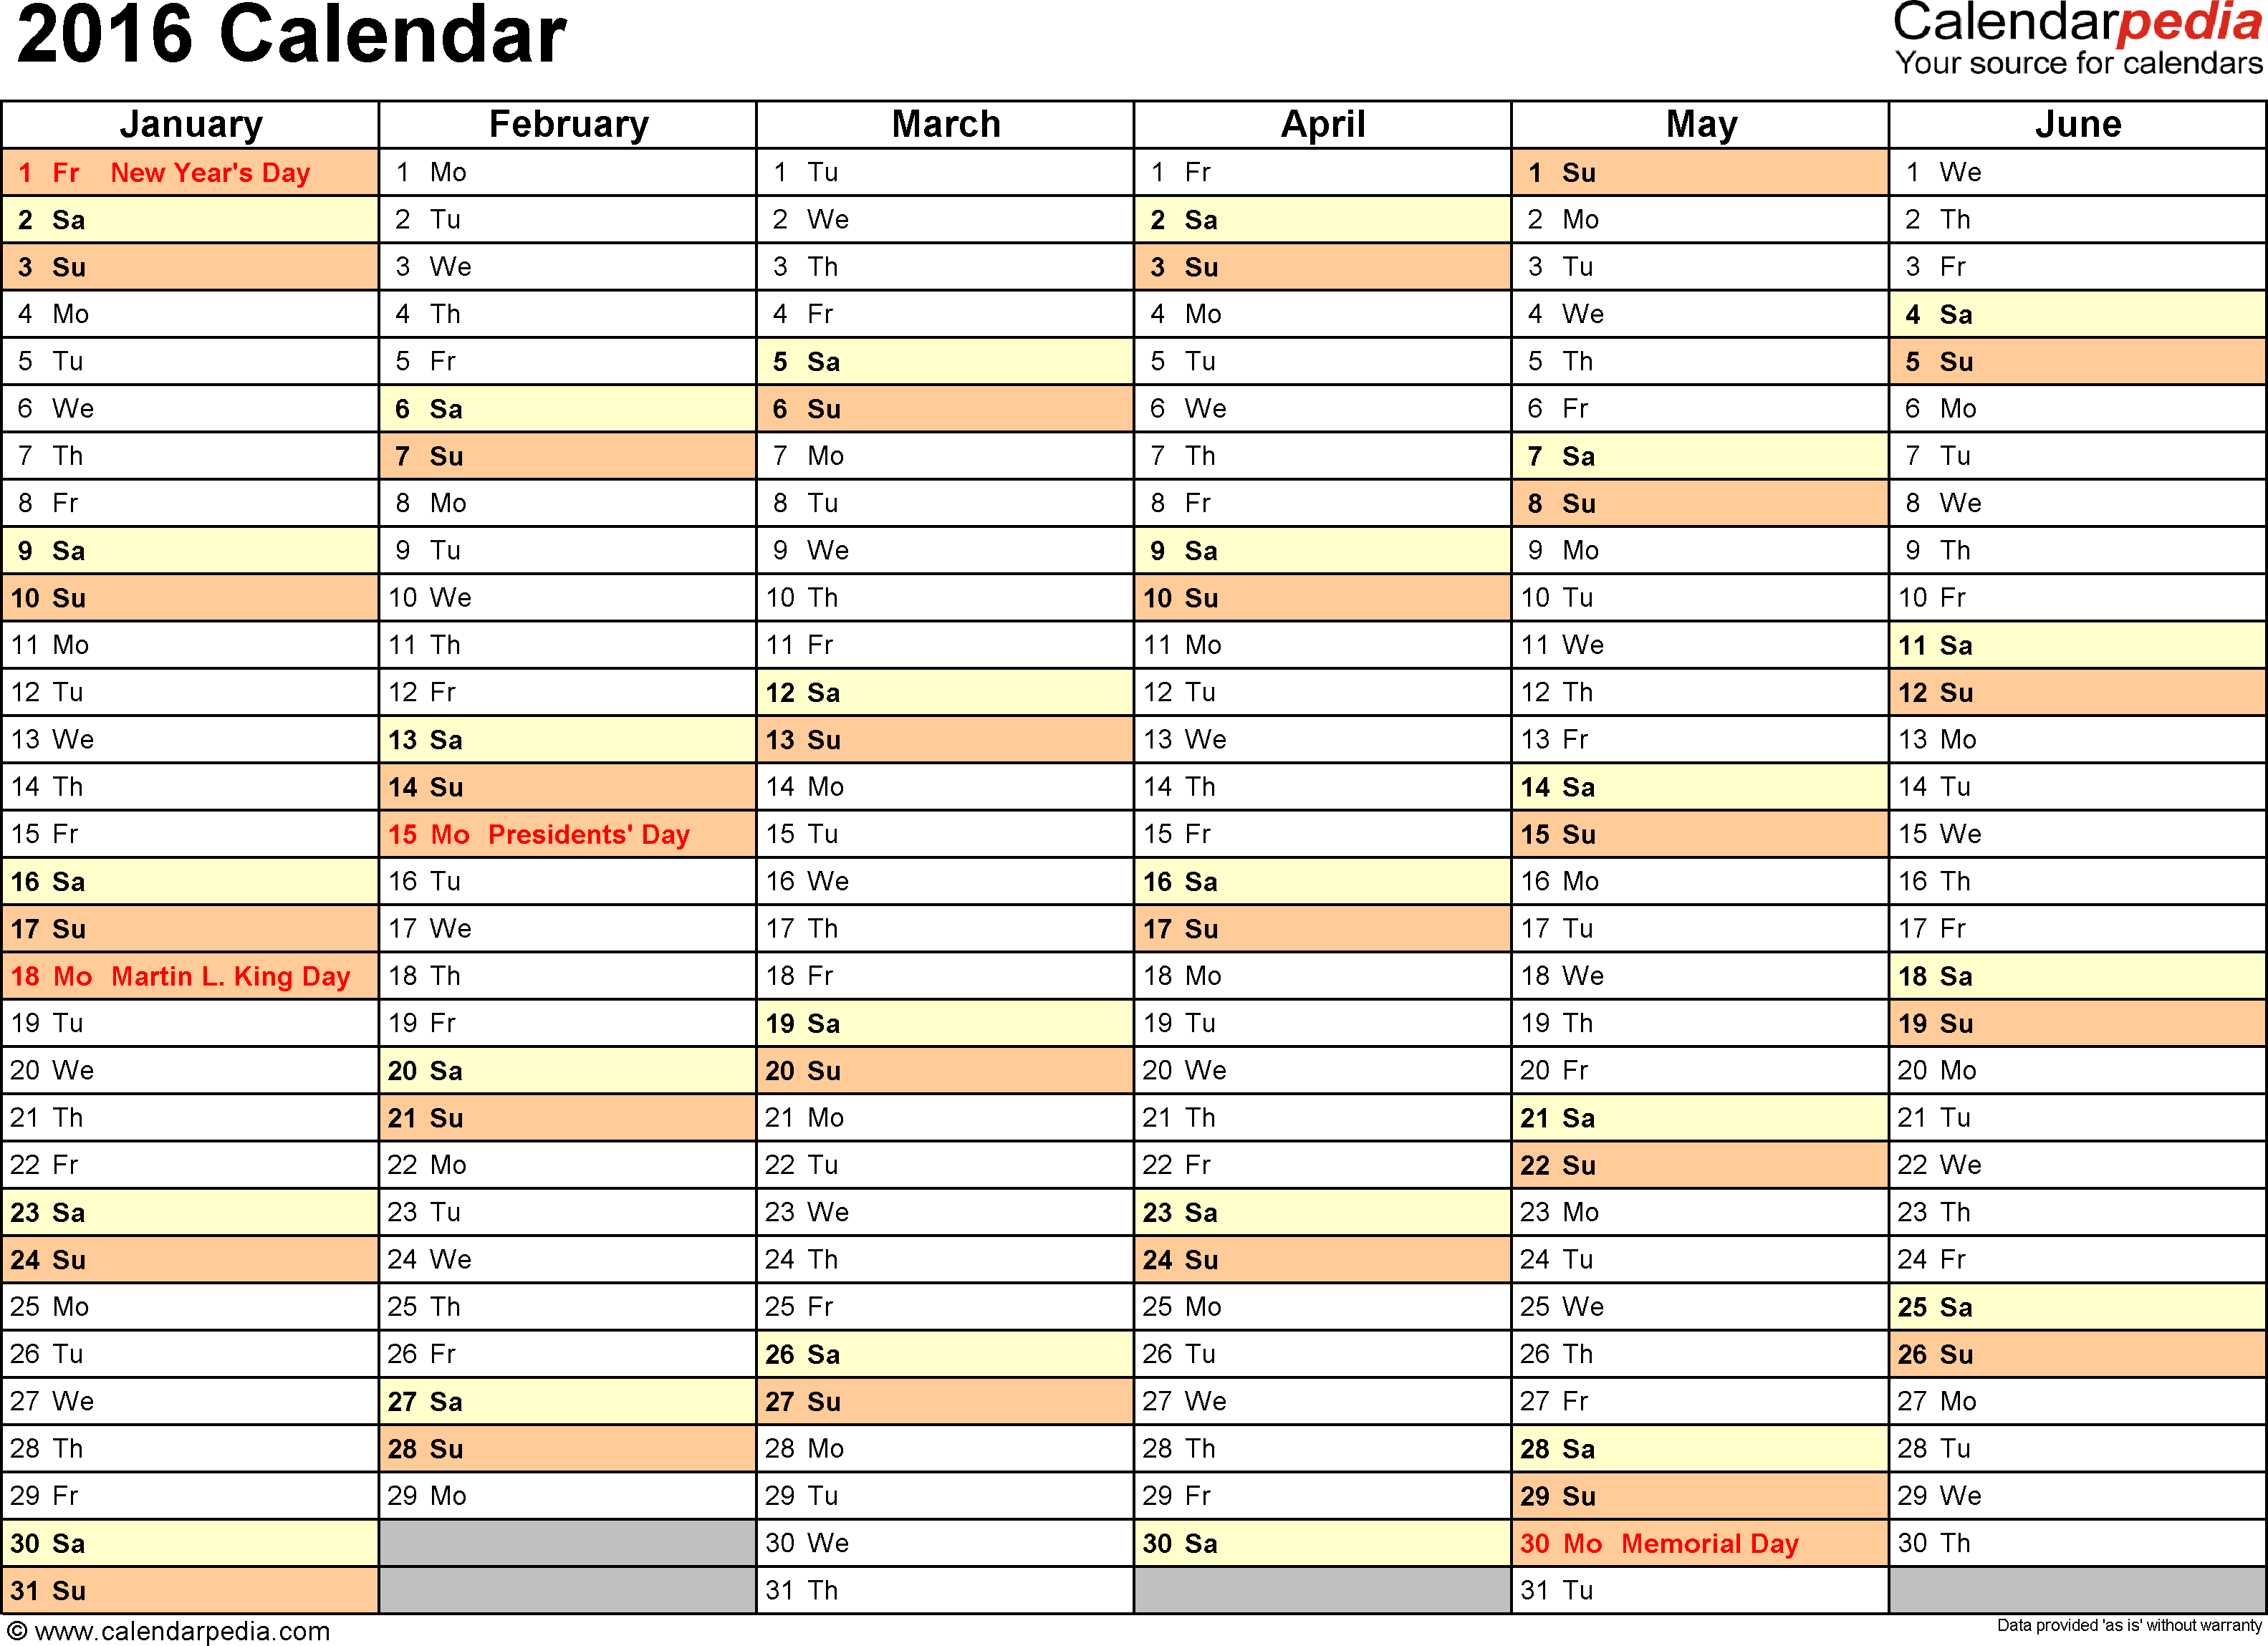 Ediblewildsus  Splendid  Calendar  Download  Free Printable Excel Templates Xls With Engaging Template   Calendar For Excel Months Horizontally  Pages Landscape Orientation With Attractive Graphing Excel Data Also Excel Convention Center In Addition Vlookup Not Working Excel  And Create A Column Chart In Excel As Well As Excel Ledger Templates Additionally Excel Showing Formulas From Calendarpediacom With Ediblewildsus  Engaging  Calendar  Download  Free Printable Excel Templates Xls With Attractive Template   Calendar For Excel Months Horizontally  Pages Landscape Orientation And Splendid Graphing Excel Data Also Excel Convention Center In Addition Vlookup Not Working Excel  From Calendarpediacom